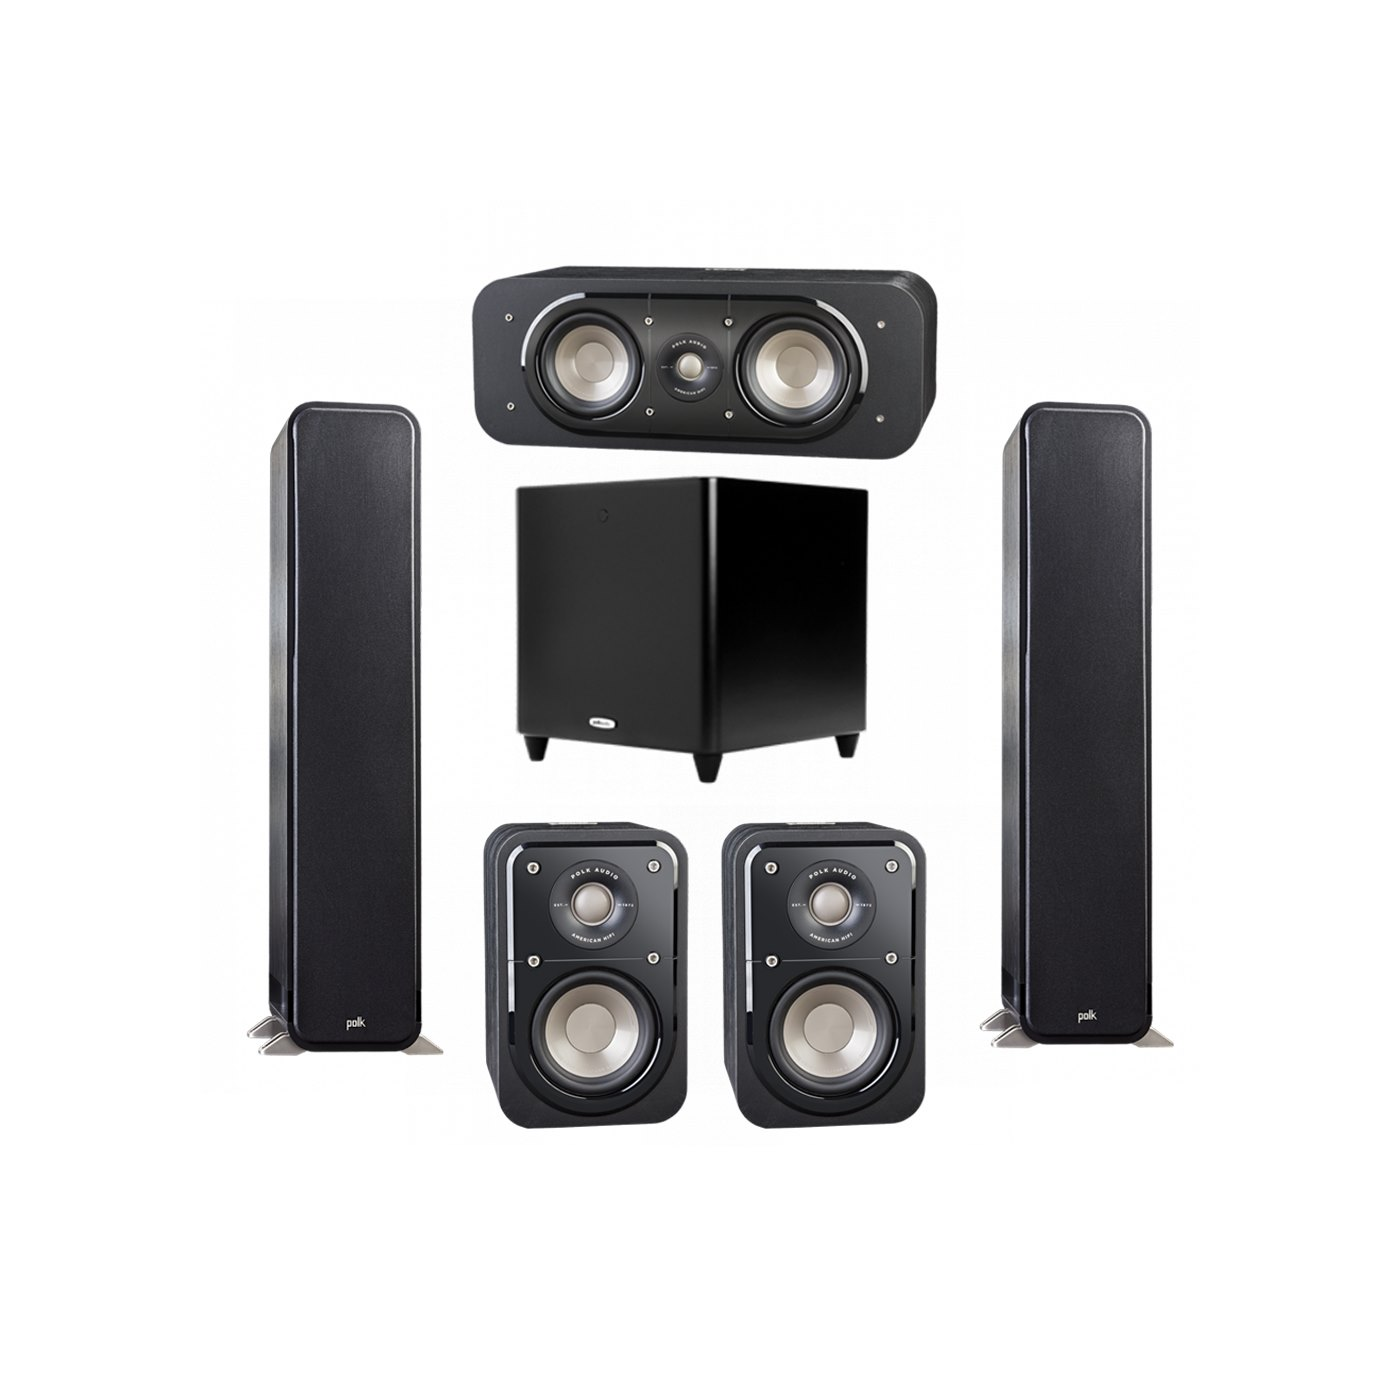 Polk Audio Signature 5.1 System with 2 S55 Tower Speaker, 1 Polk S30 Center Speaker, 2 Polk S10 Surround Speaker, 1 Polk DSW PRO 660 wi Subwoofer